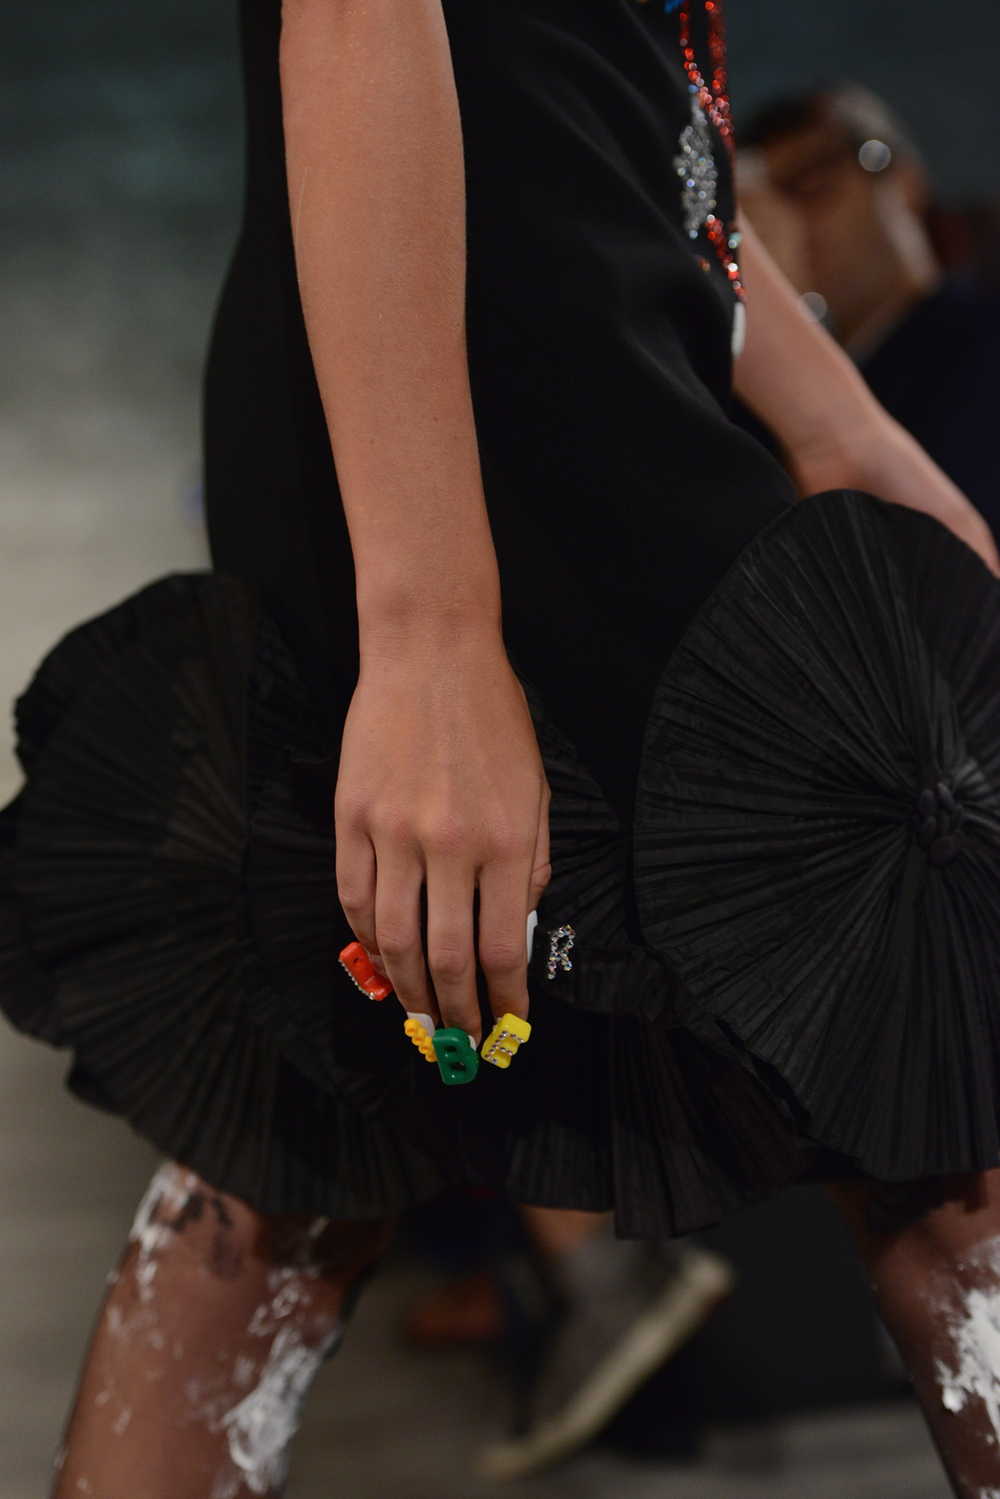 <p>Some models sported jewel-encrusted lettering that spelled out &ldquo;LIBERTINE!&rdquo; across both hands. Photo courtesy of CND.</p>